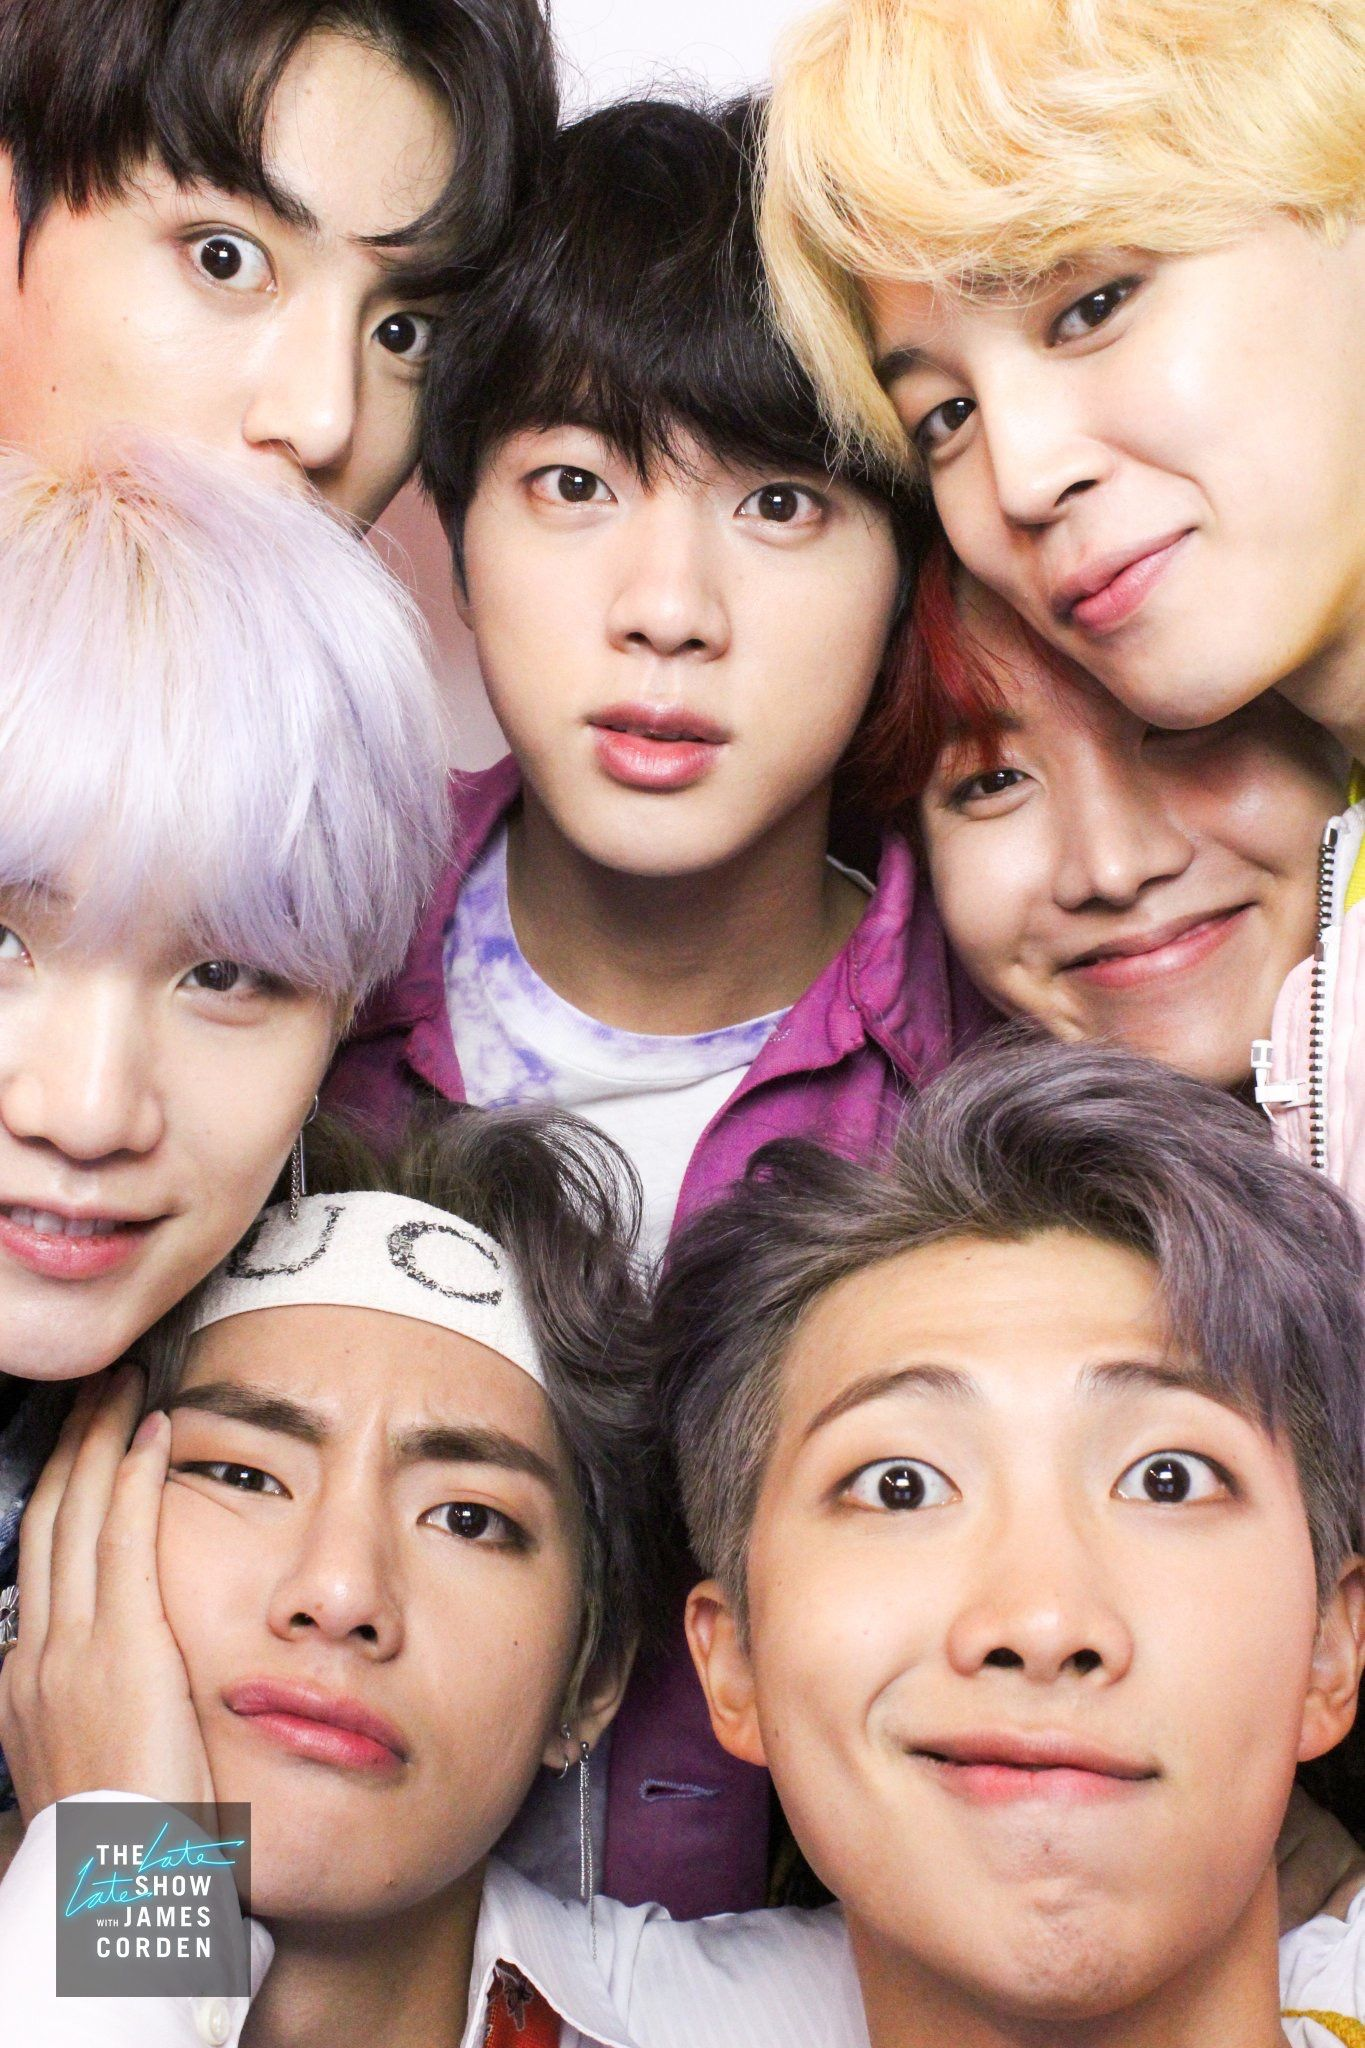 180322 @latelateshow Twitter update • Digging through the #LateLateShow photo booth archives we found this delightful pic of @BTS_twt from their November visit when they performed and played Flinch!